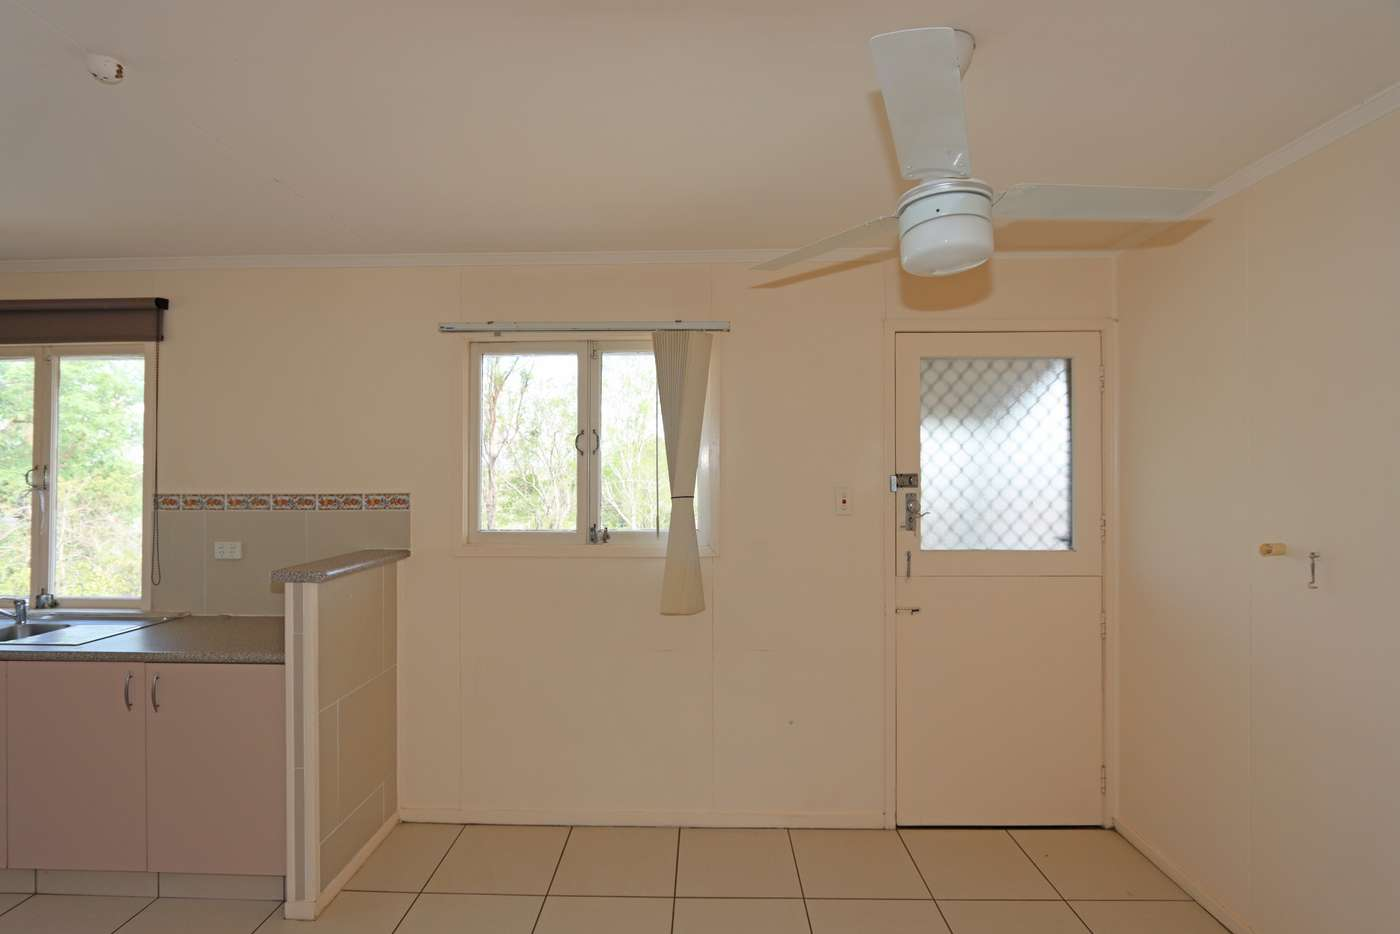 Sixth view of Homely house listing, 38 ASPINALL STREET, Leichhardt QLD 4305